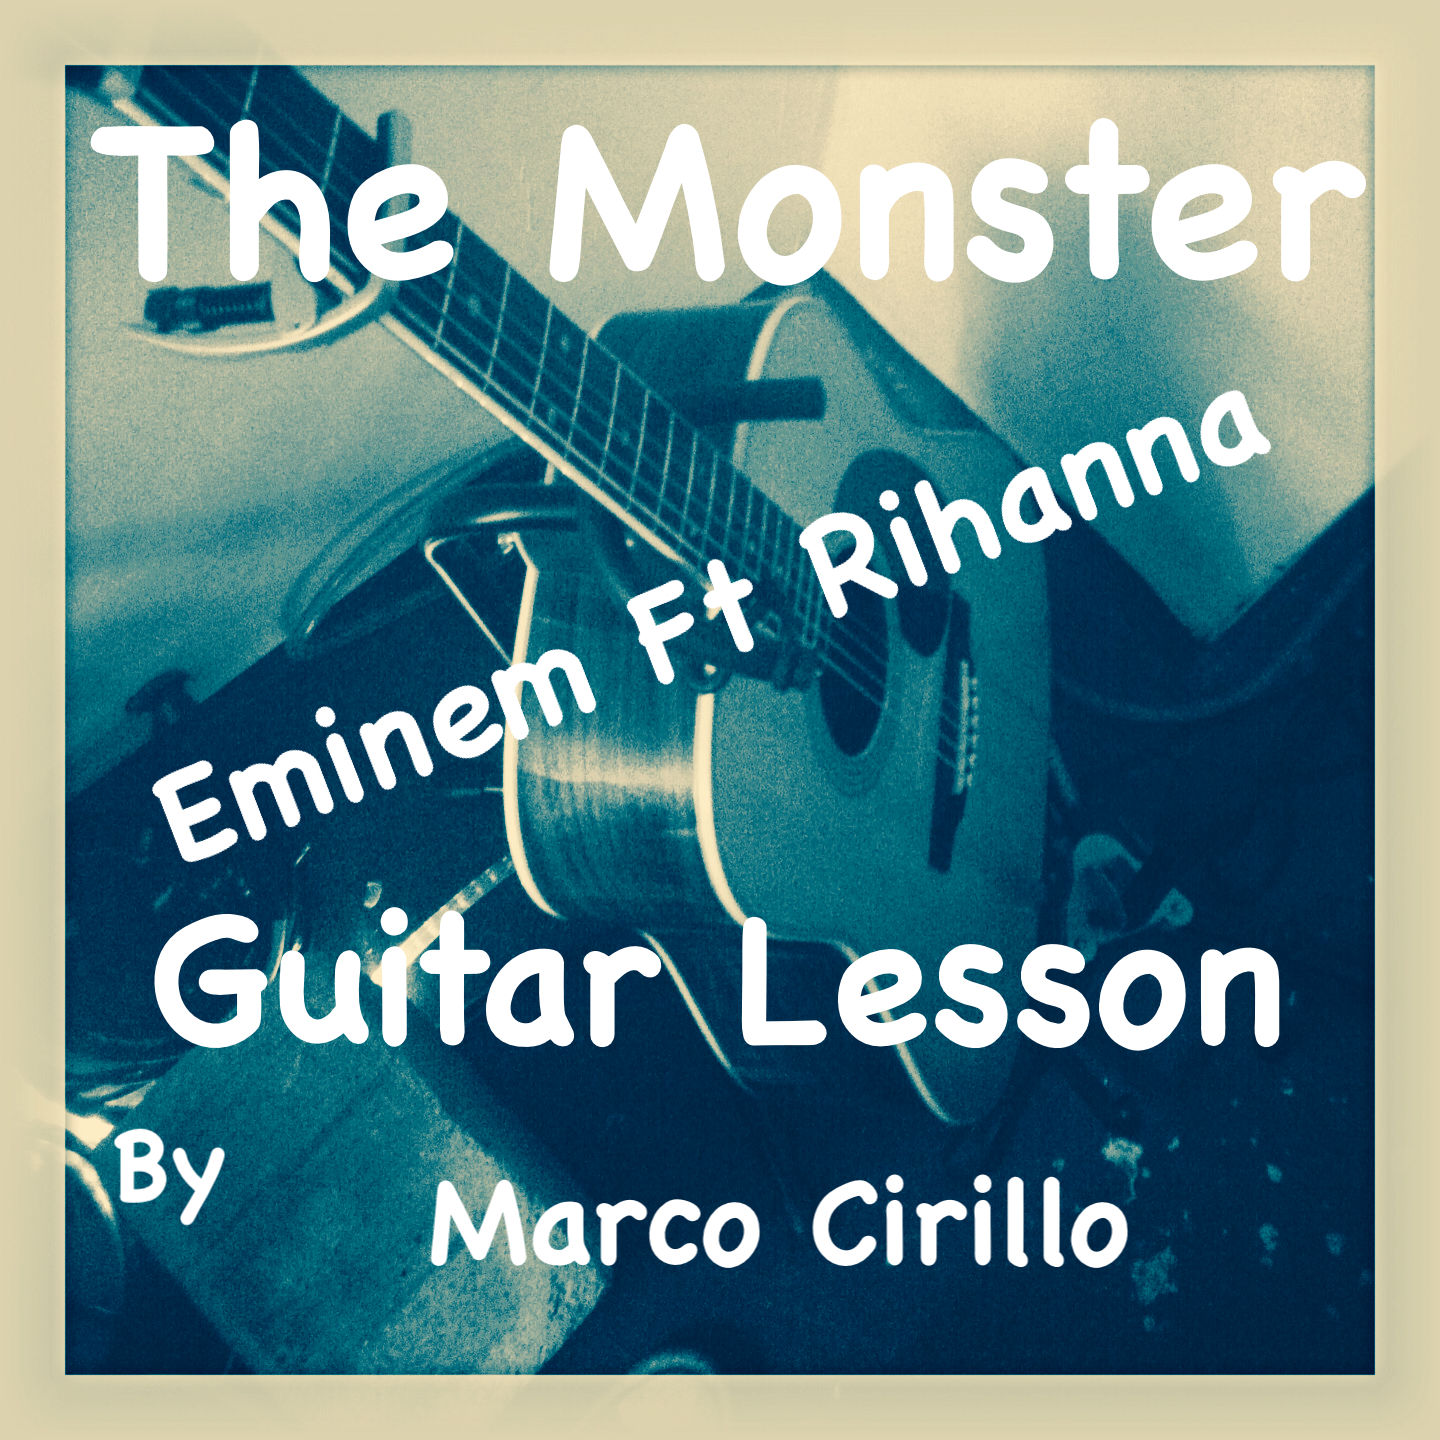 The Monster Eminem Ft Rihanna Chords And Tab Free Online